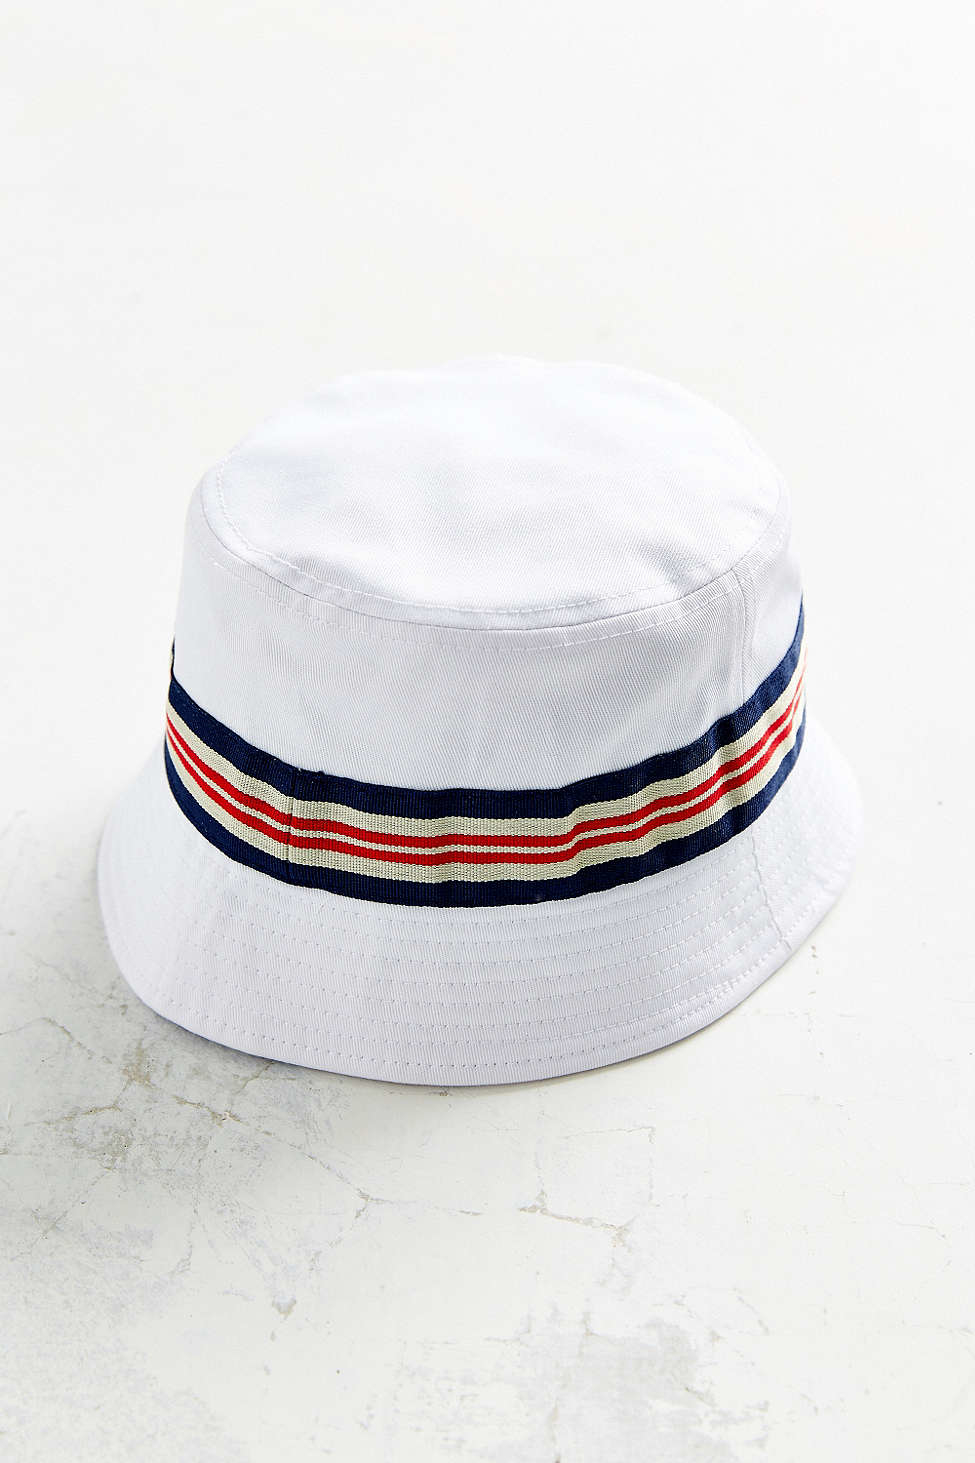 42f959a5cb06 ... new zealand lyst fila uo casper bucket hat in white ec7e9 17a48